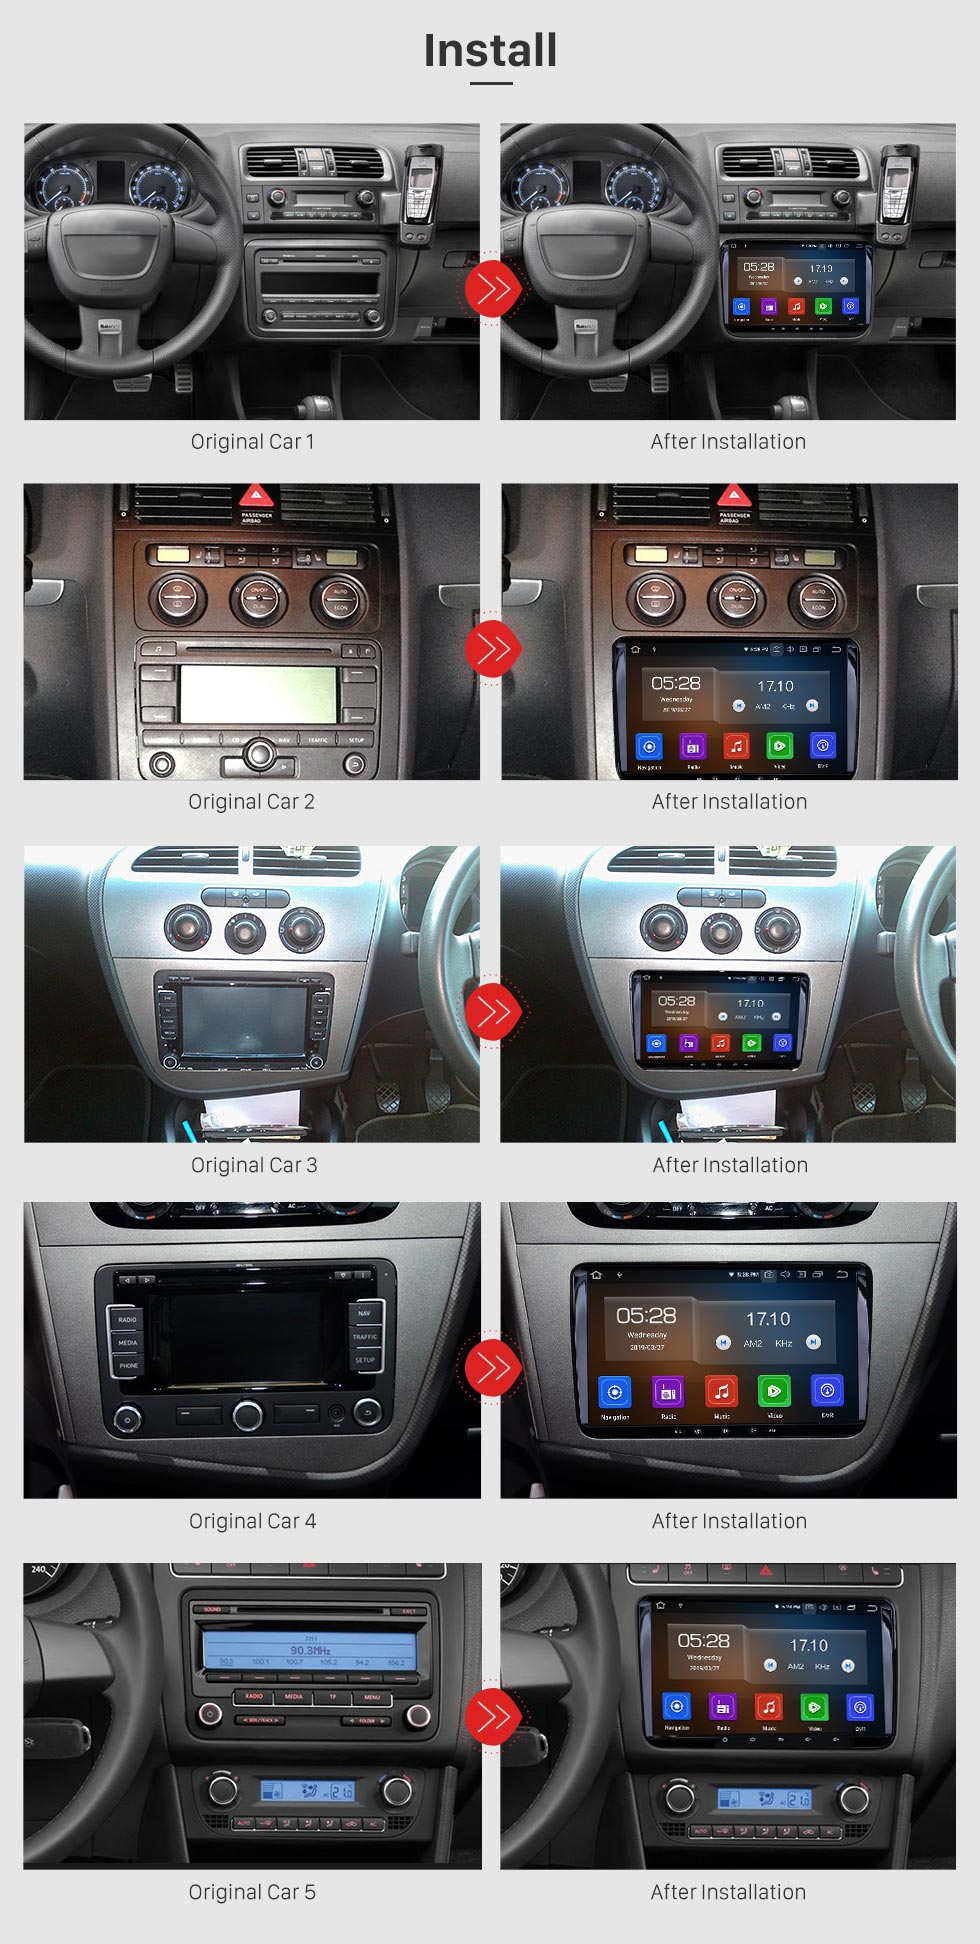 Seicane Aftermarket Android 9.0 GPS DVD Player Car Audio System for 2006-2011 Seat Cupra with Mirror Link OBD2 DVR 3G WiFi Radio Backup Camera HD touch Screen Bluetooth